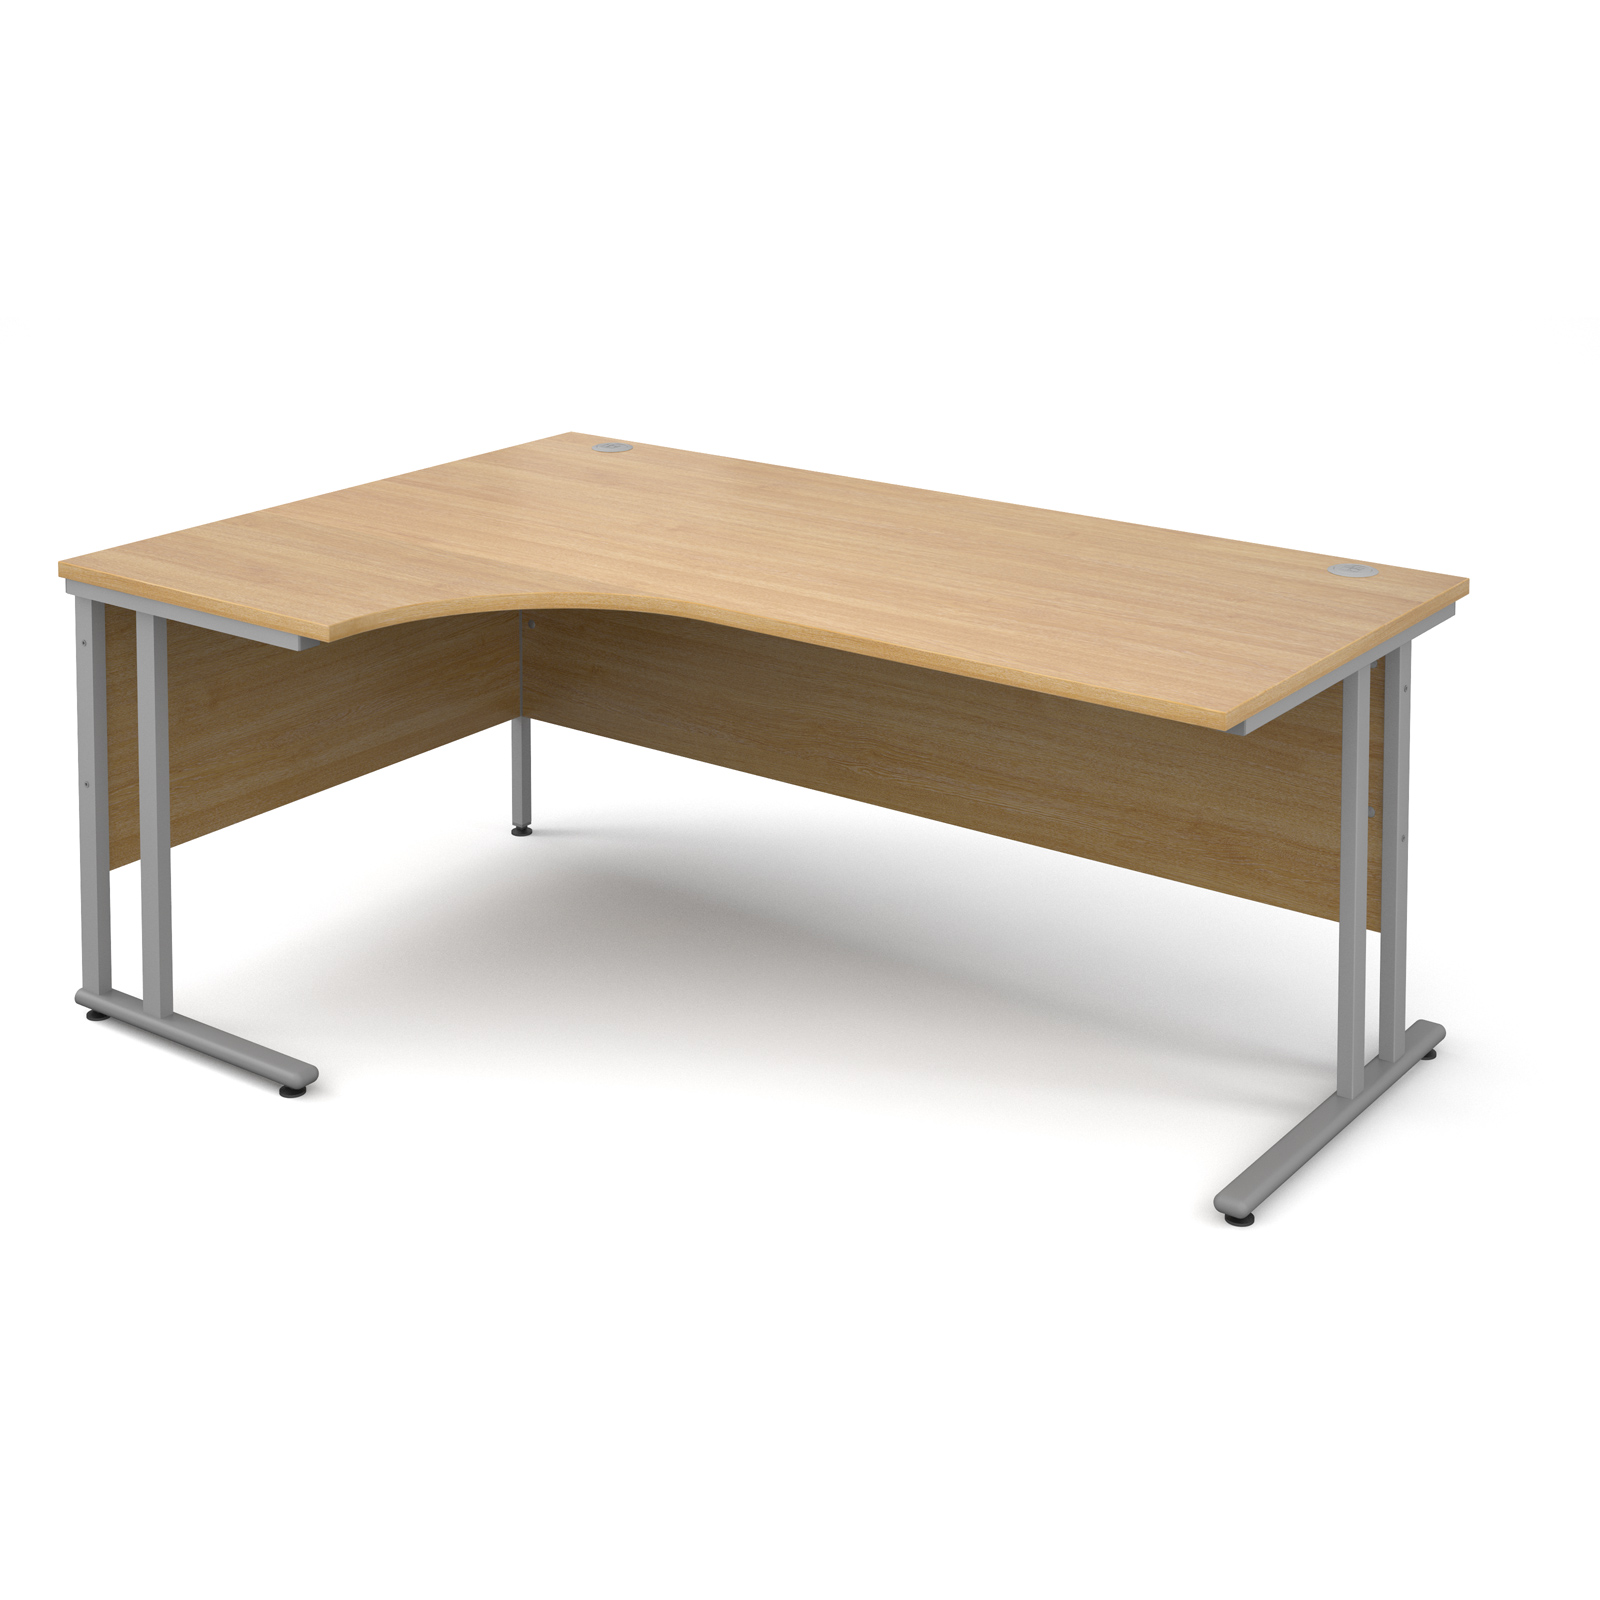 Maestro 25 SL 1800mm Left Hand Double Upright Cantilever Ergo Desk Silver/Oak